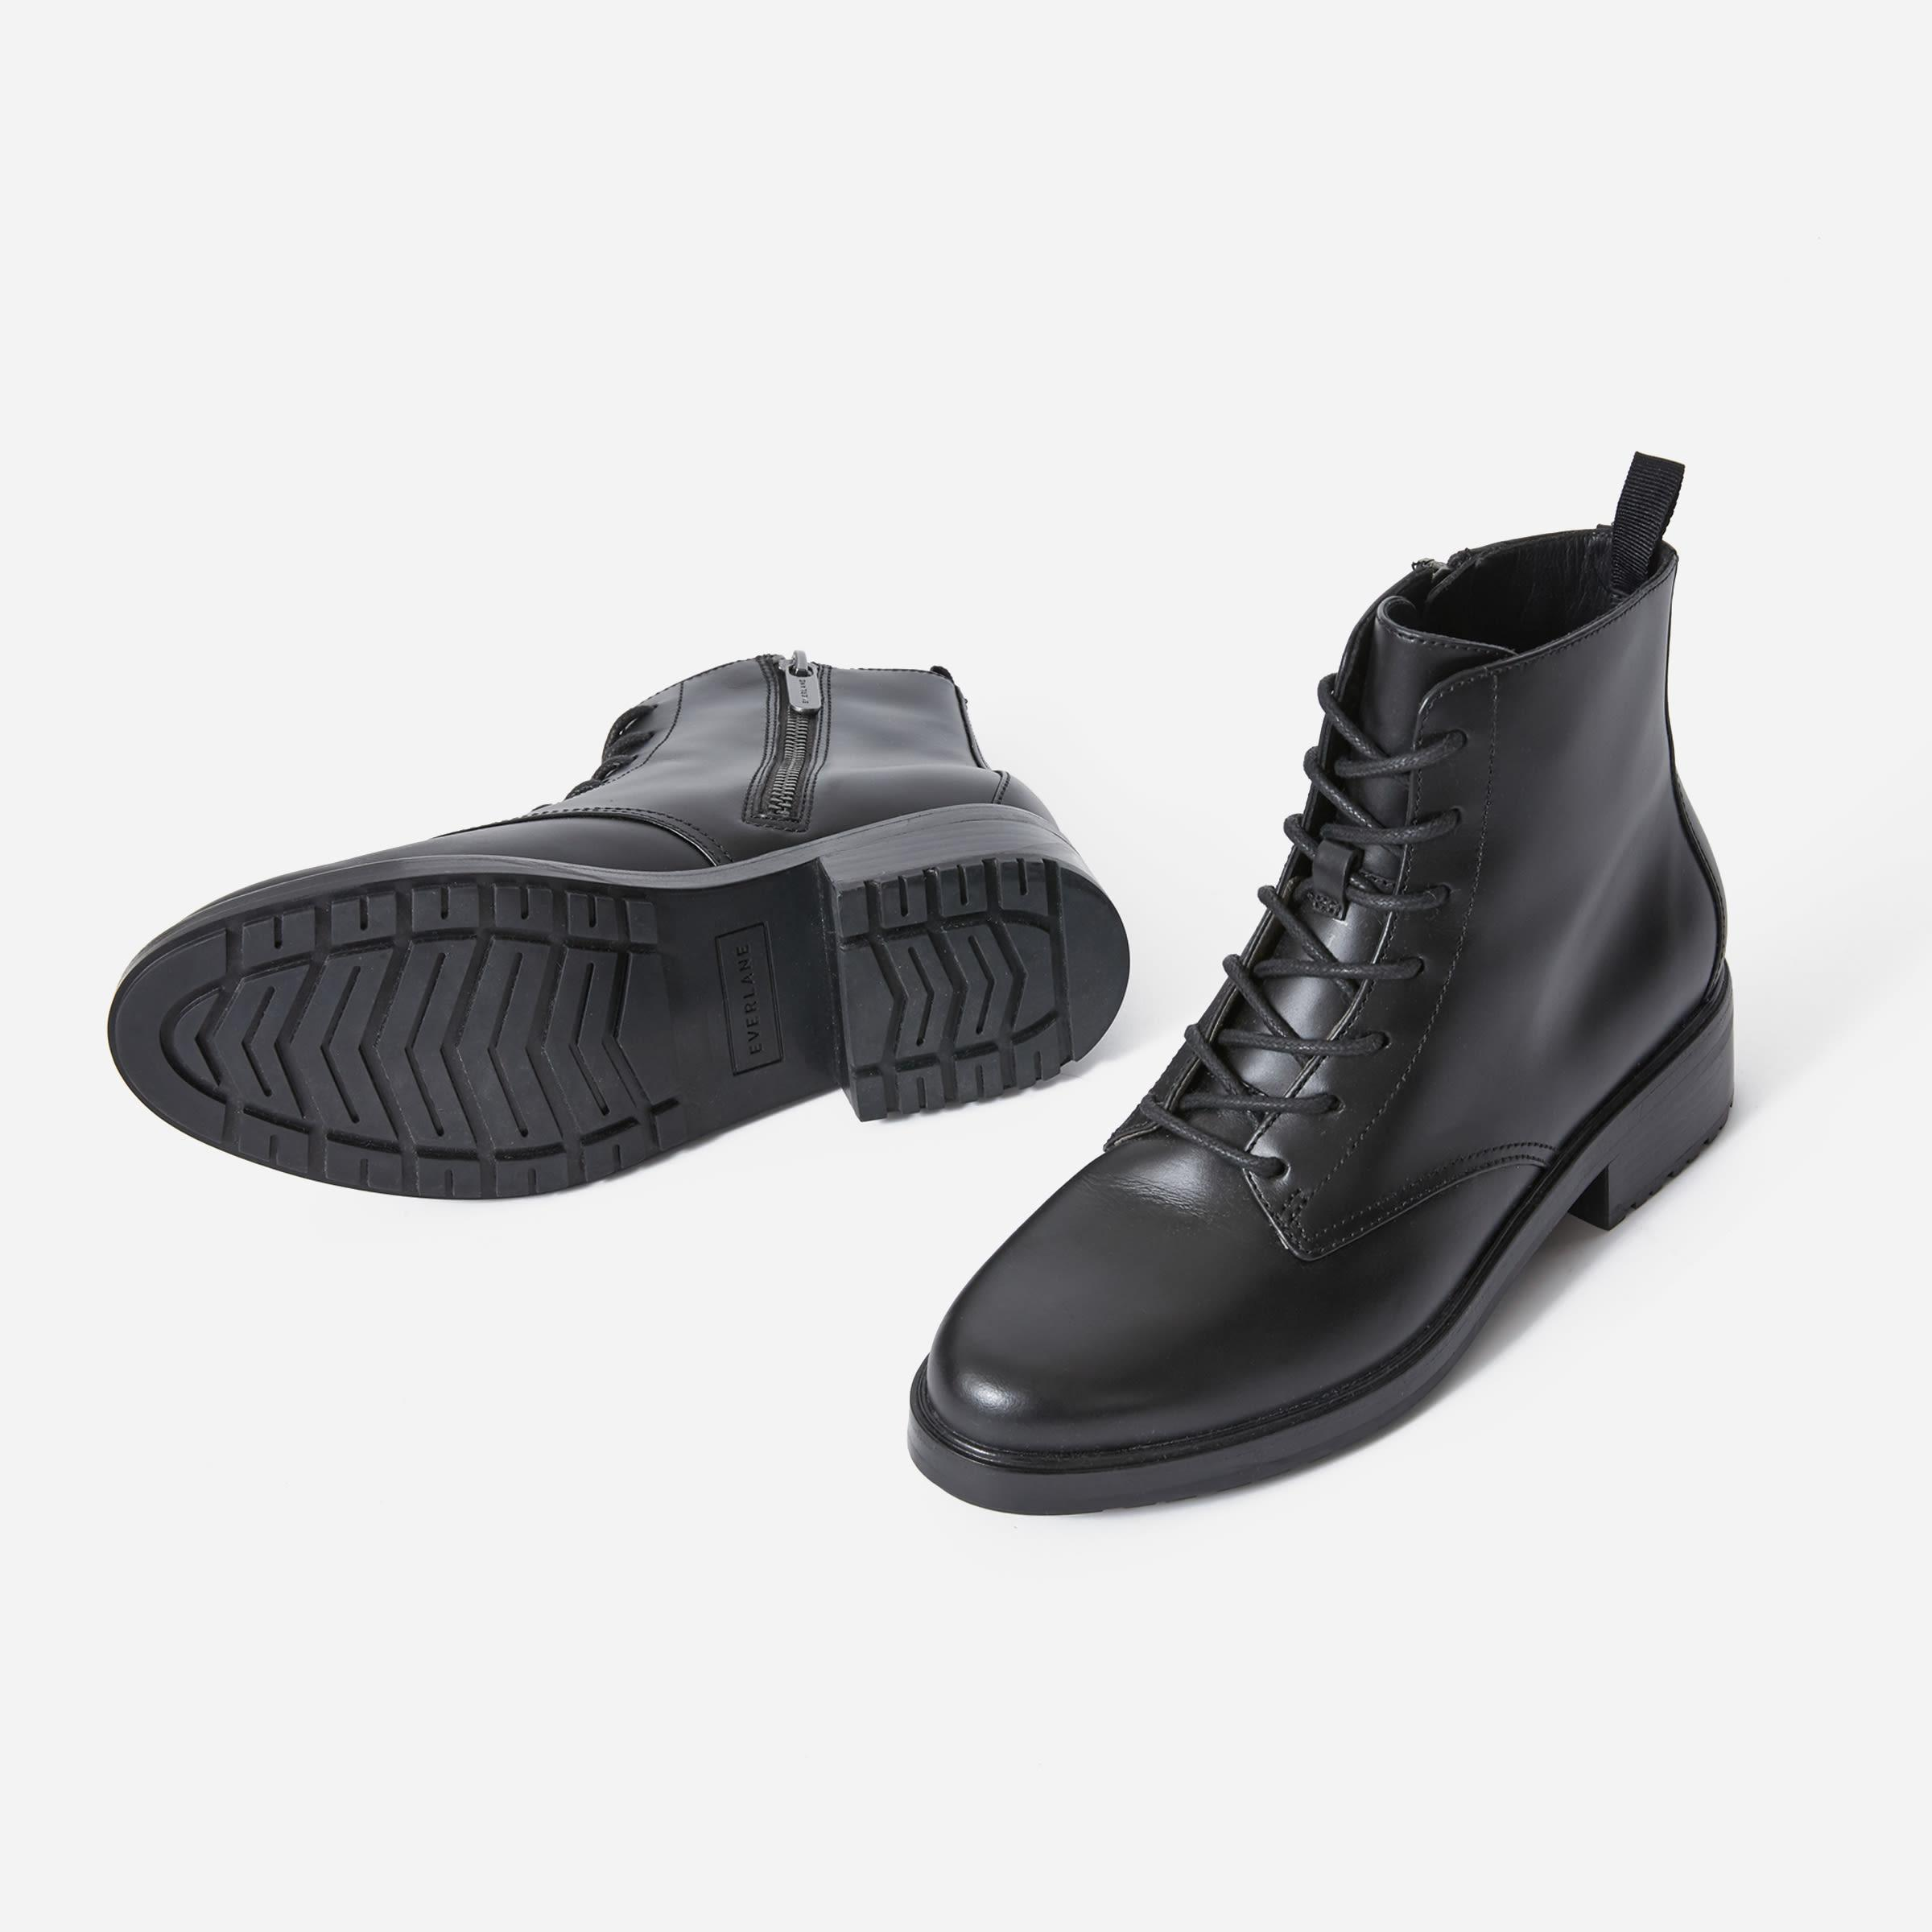 The Modern Utility Lace-Up Boot 2